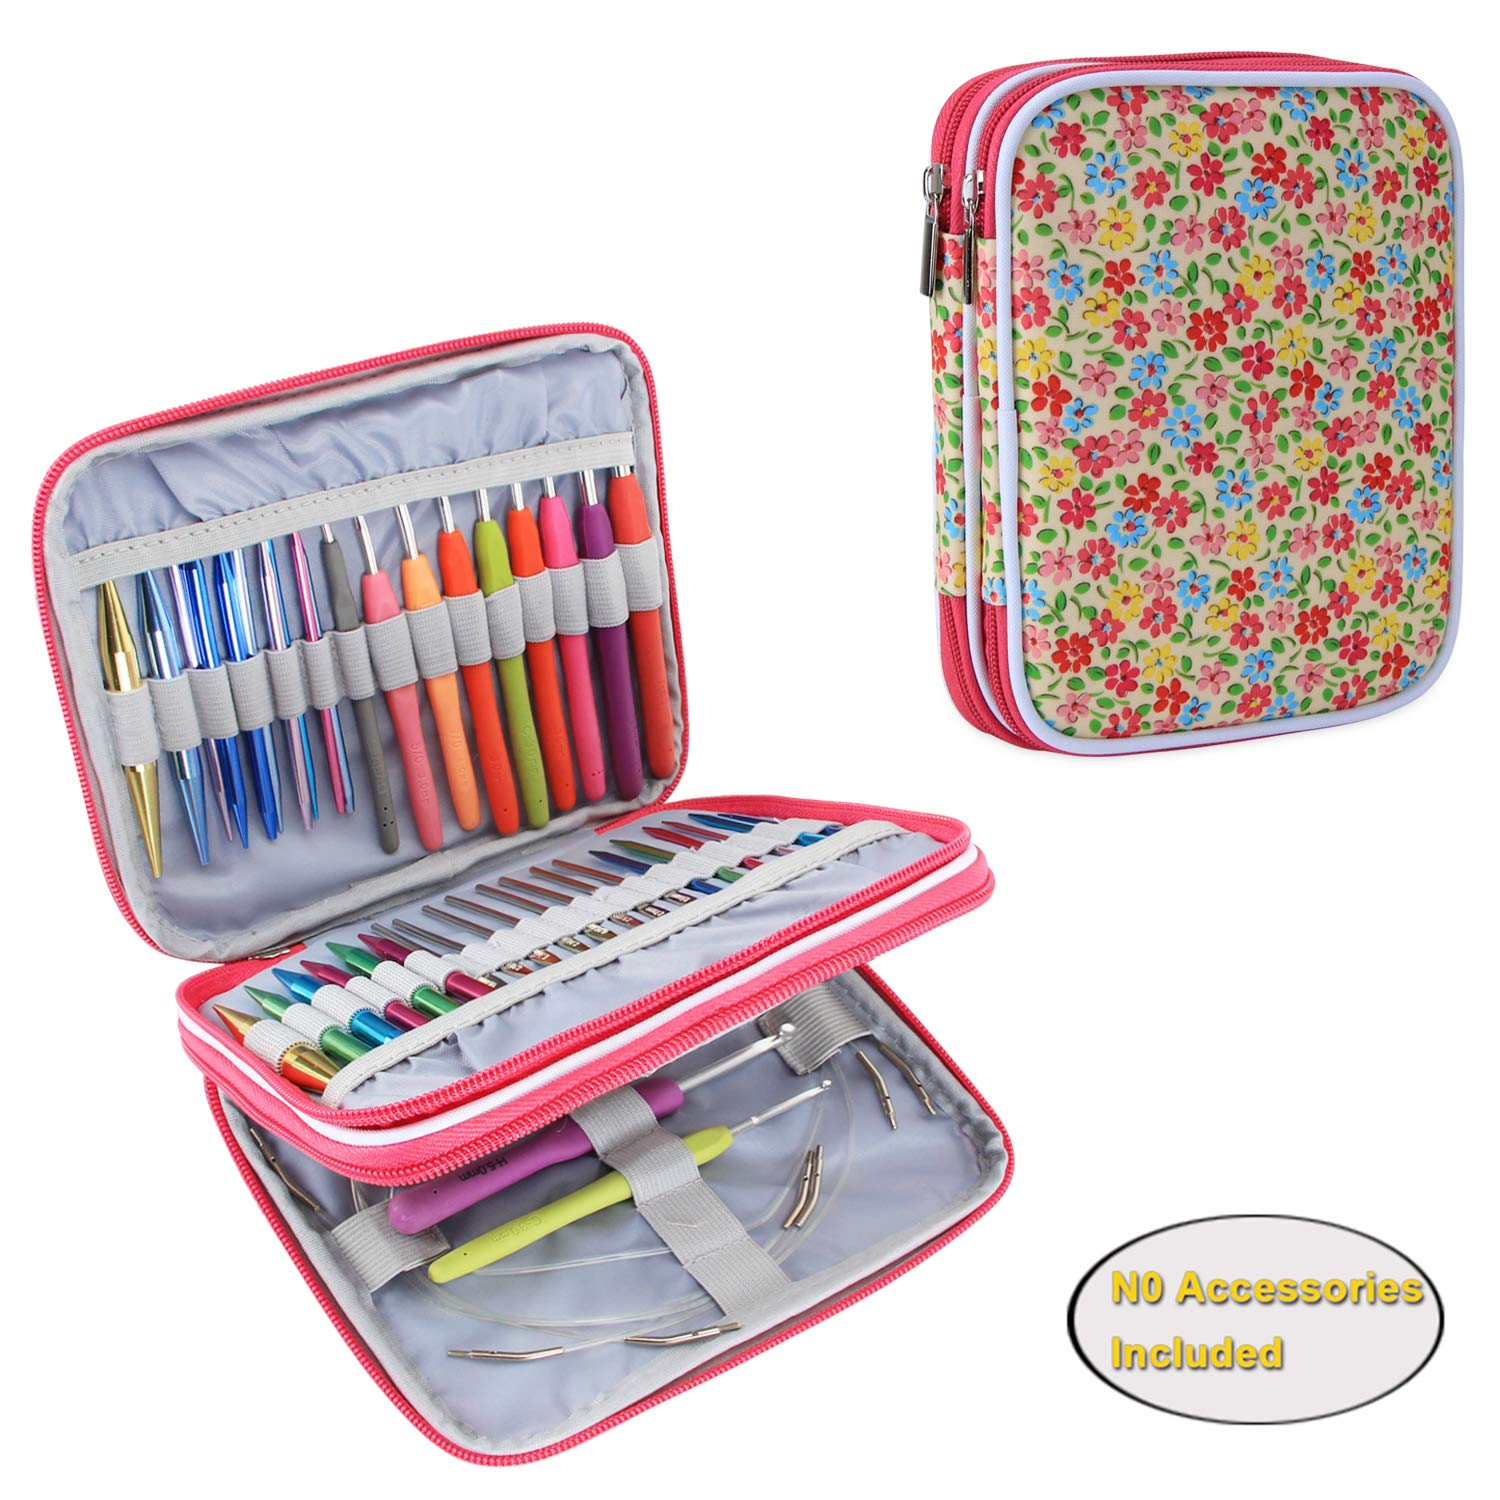 Teamoy Organizer Case for Interchangeable Circular Knitting Needles, Crochet Hooks and Knitting Accessories, Keep All in One Place and Easy to Carry, ...